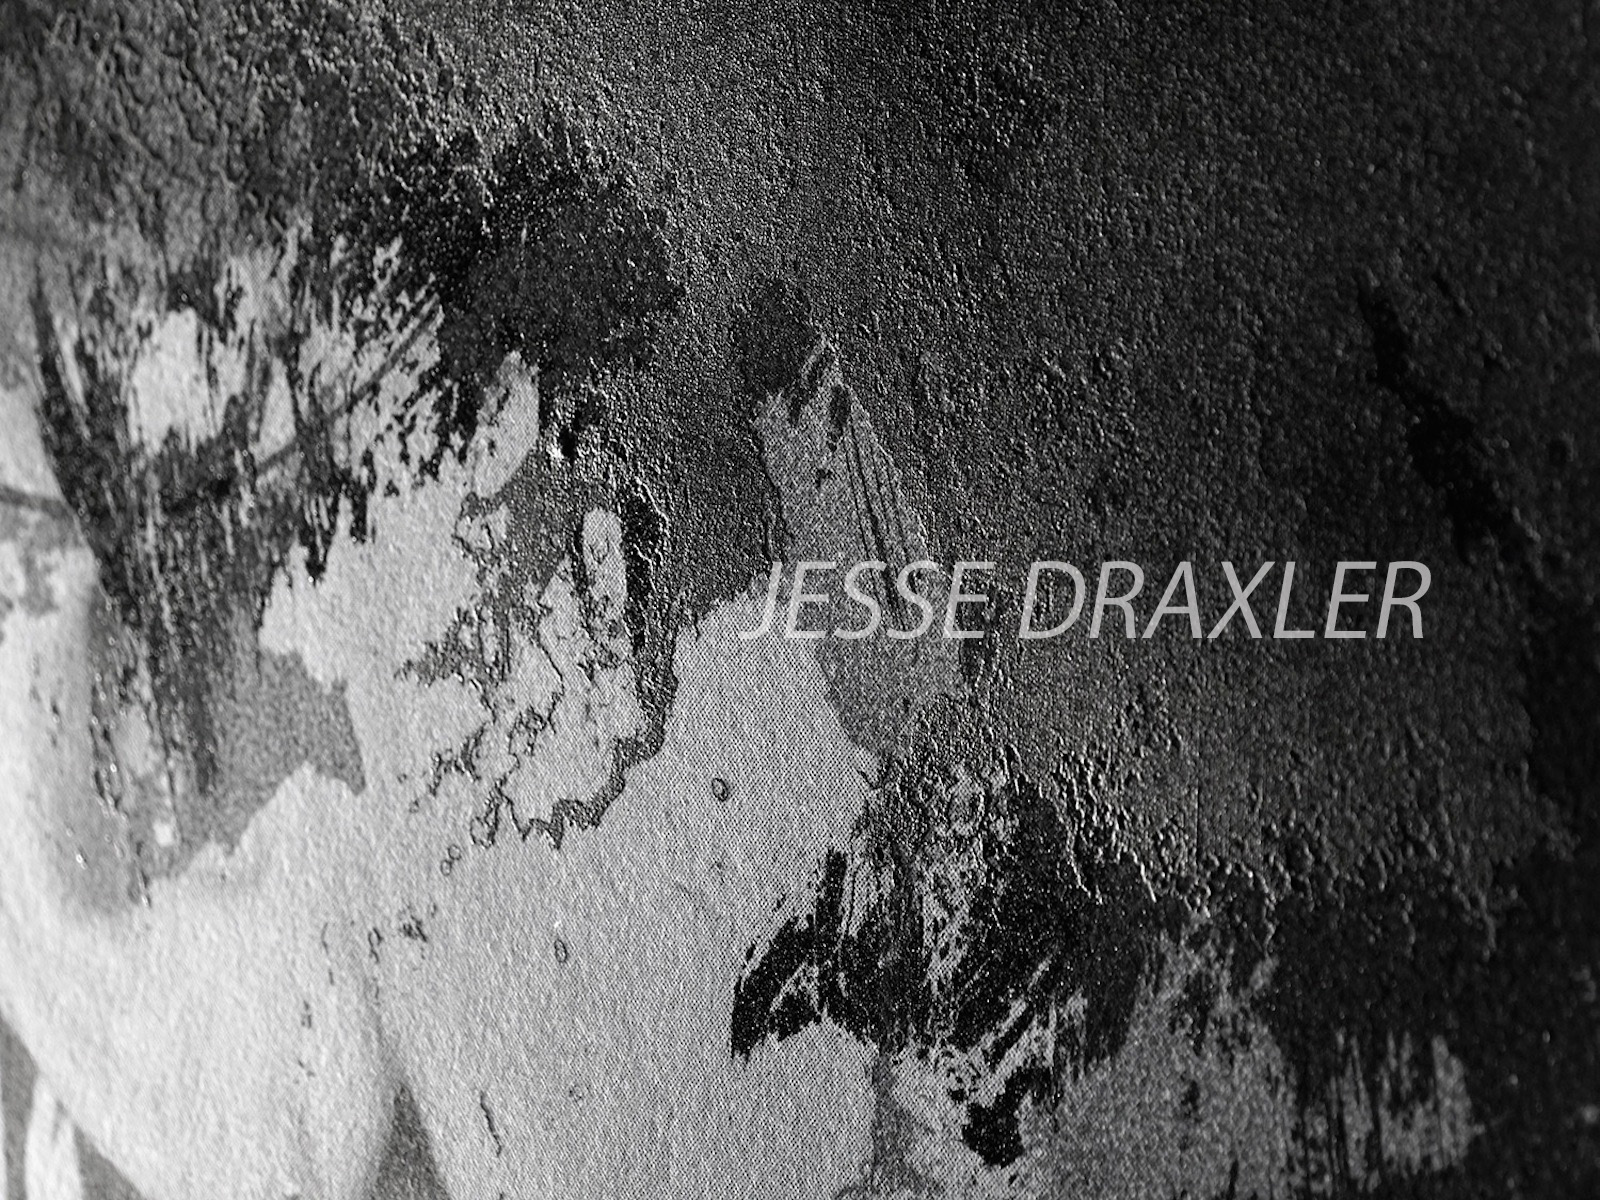 JESSE DRAXLER – SCREENPRINTS DEBUT